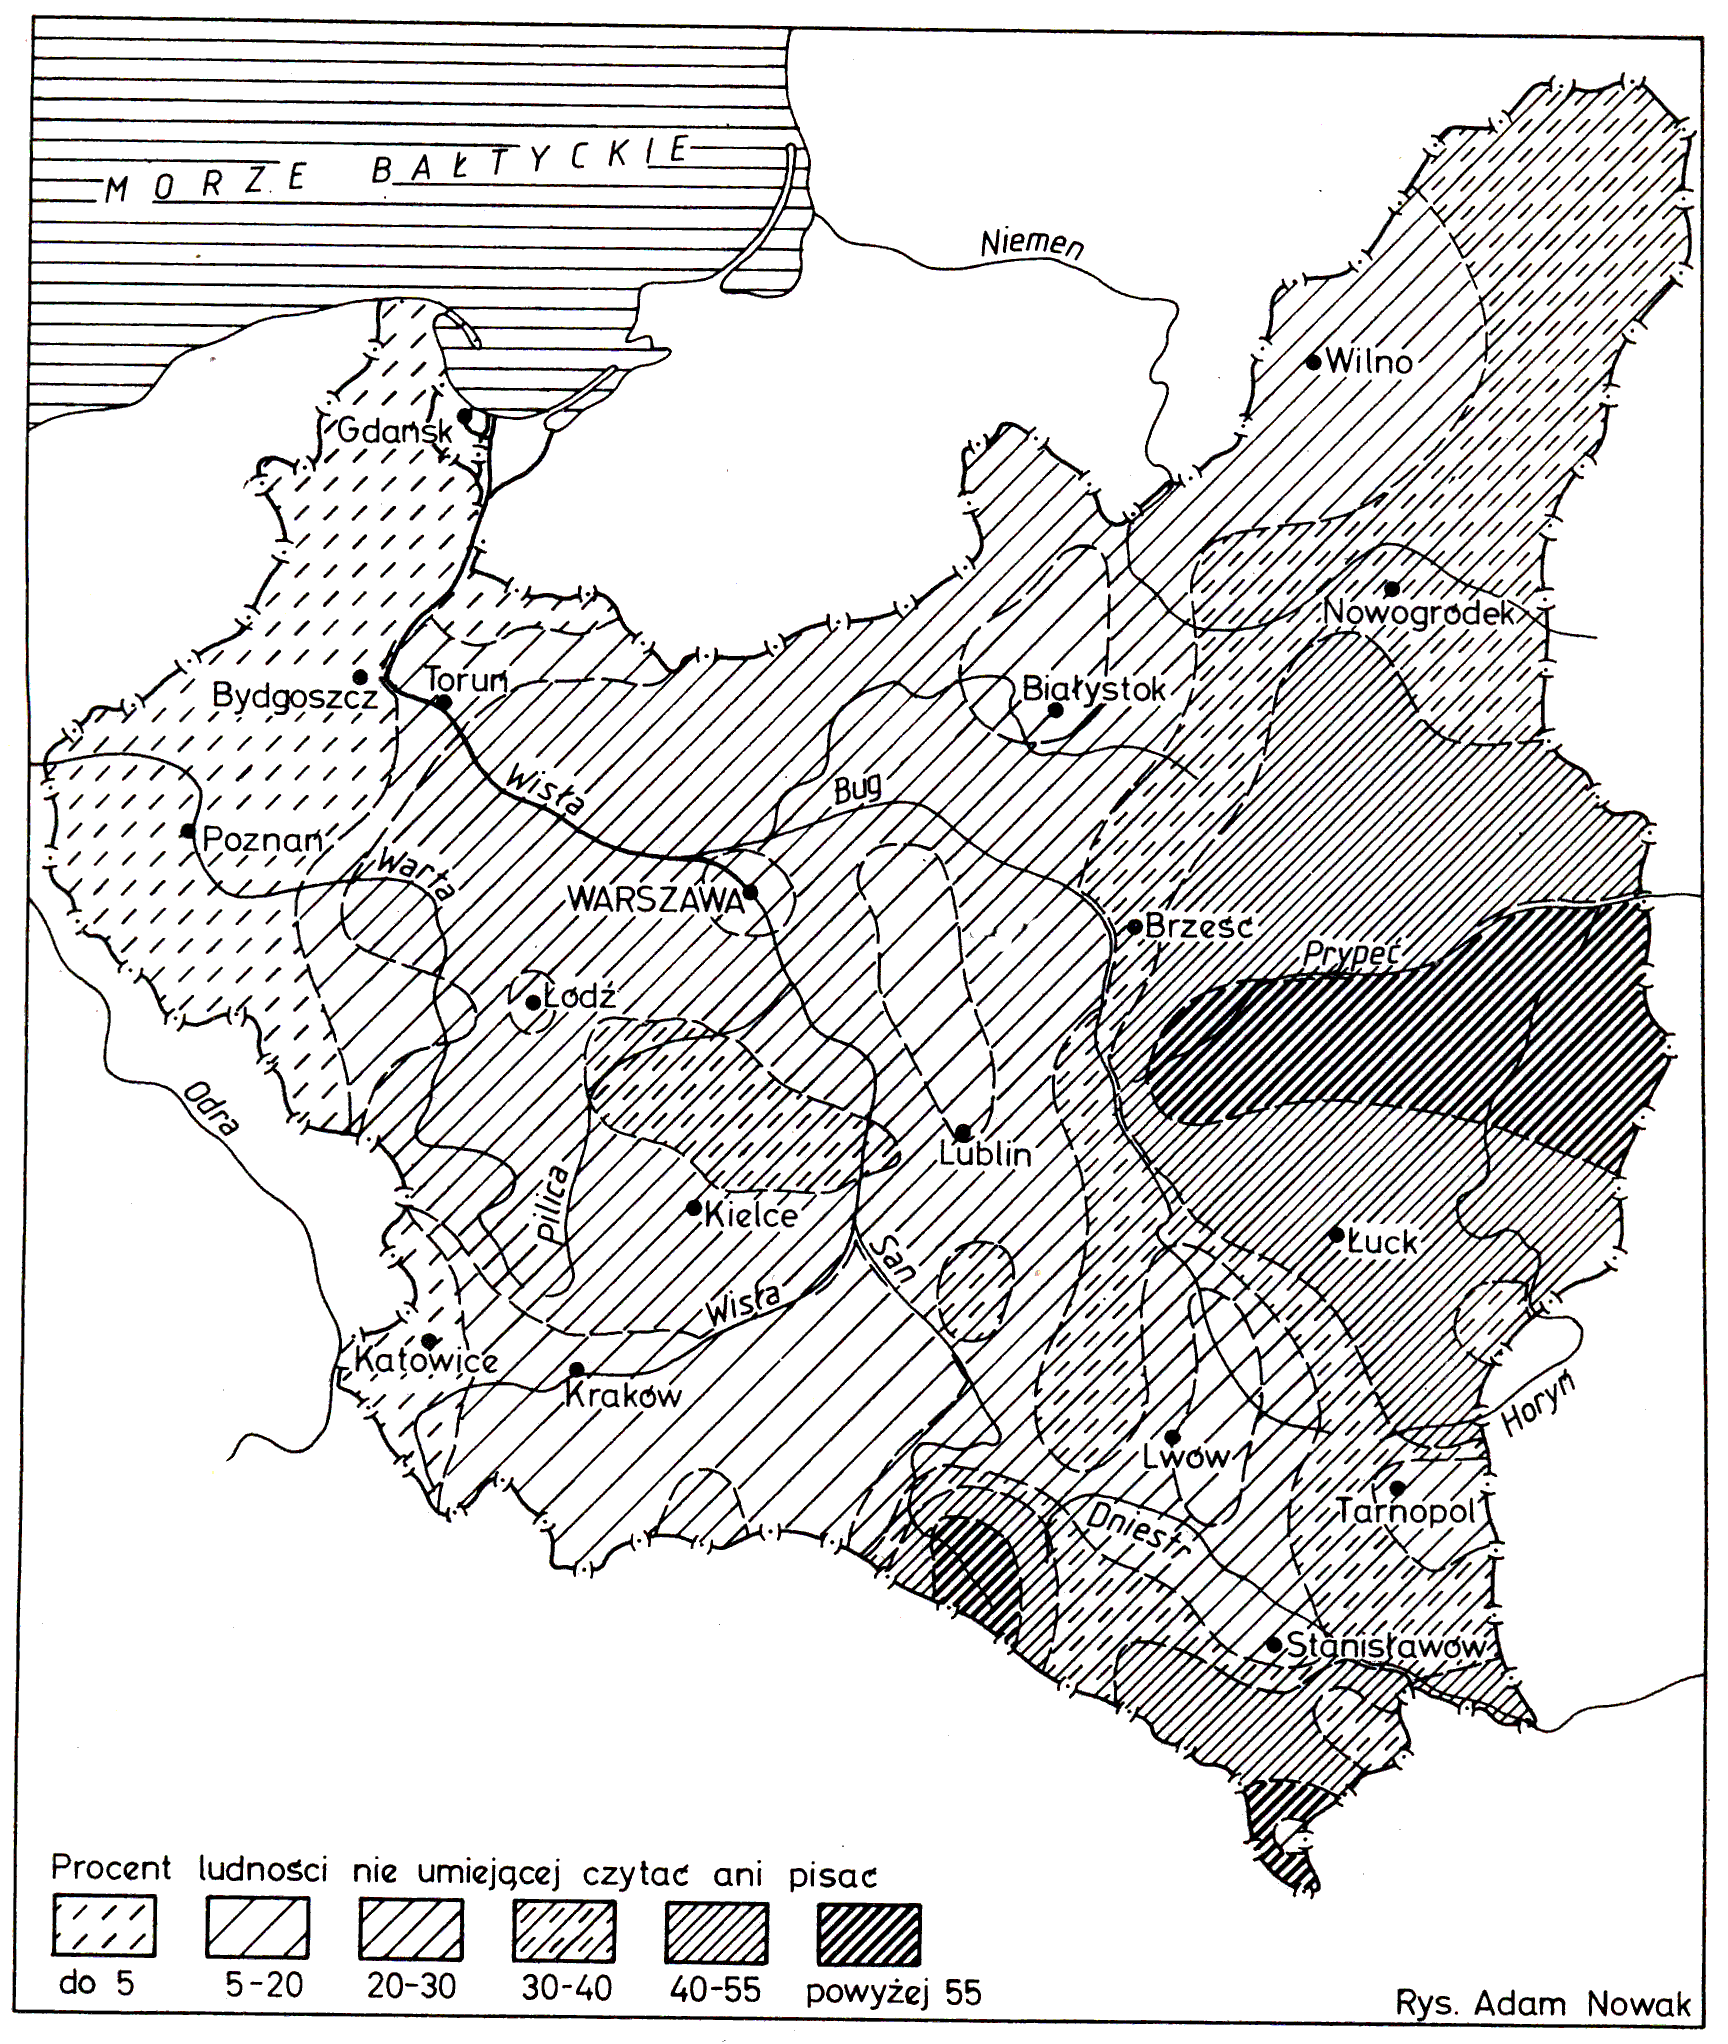 http://upload.wikimedia.org/wikipedia/commons/d/d5/HistPol-analfabetyzm1931.png?uselang=pl